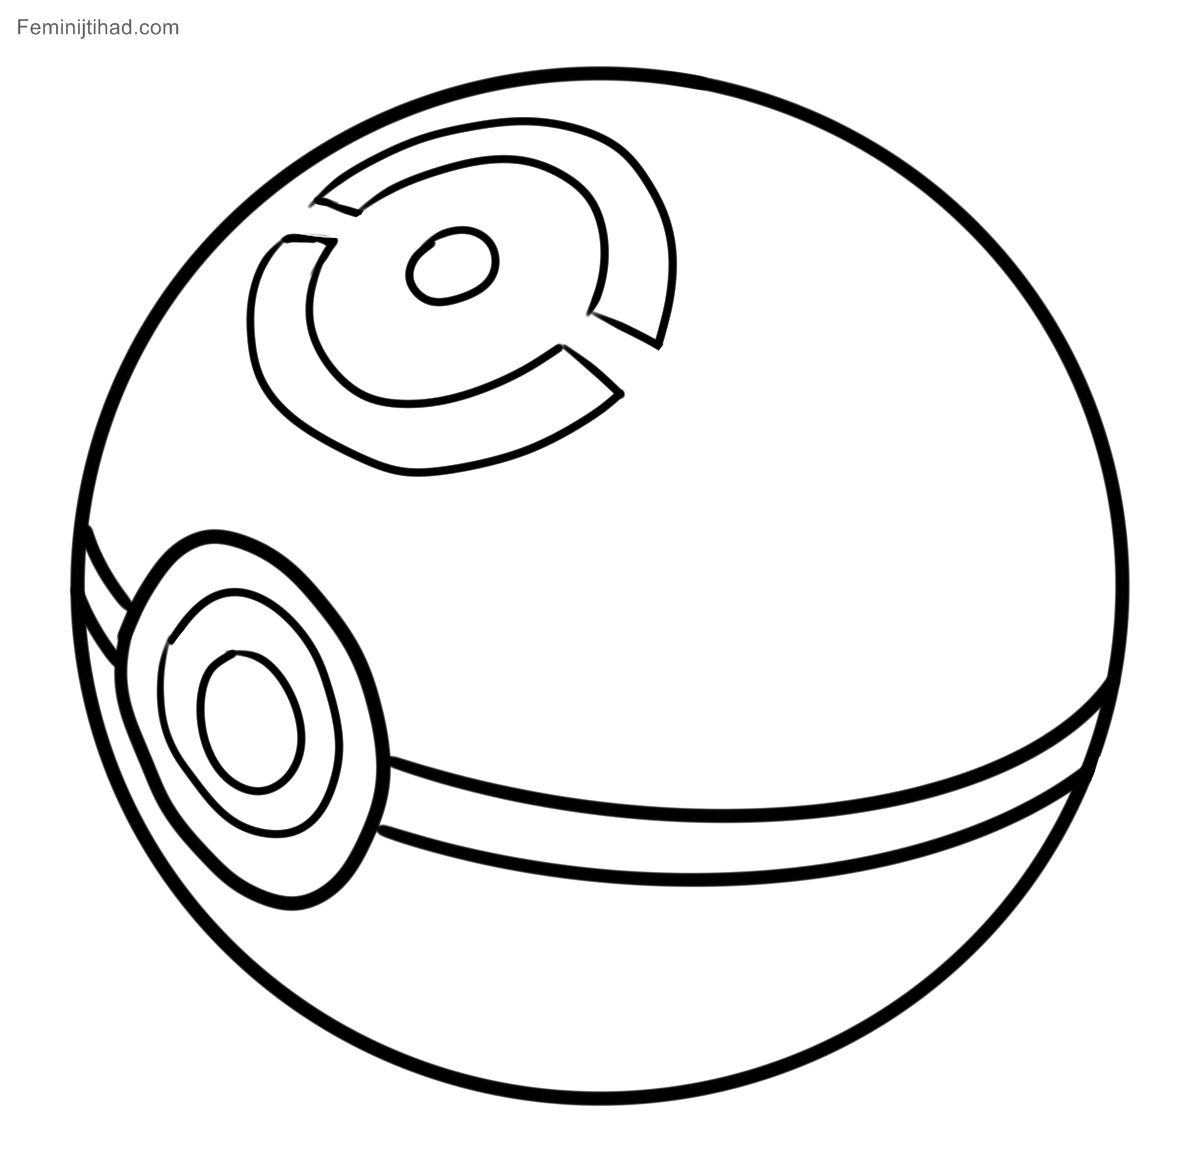 pokemon ultra ball coloring pages pokemon ultra ball coloring pages coloring pages ball ultra pages coloring pokemon